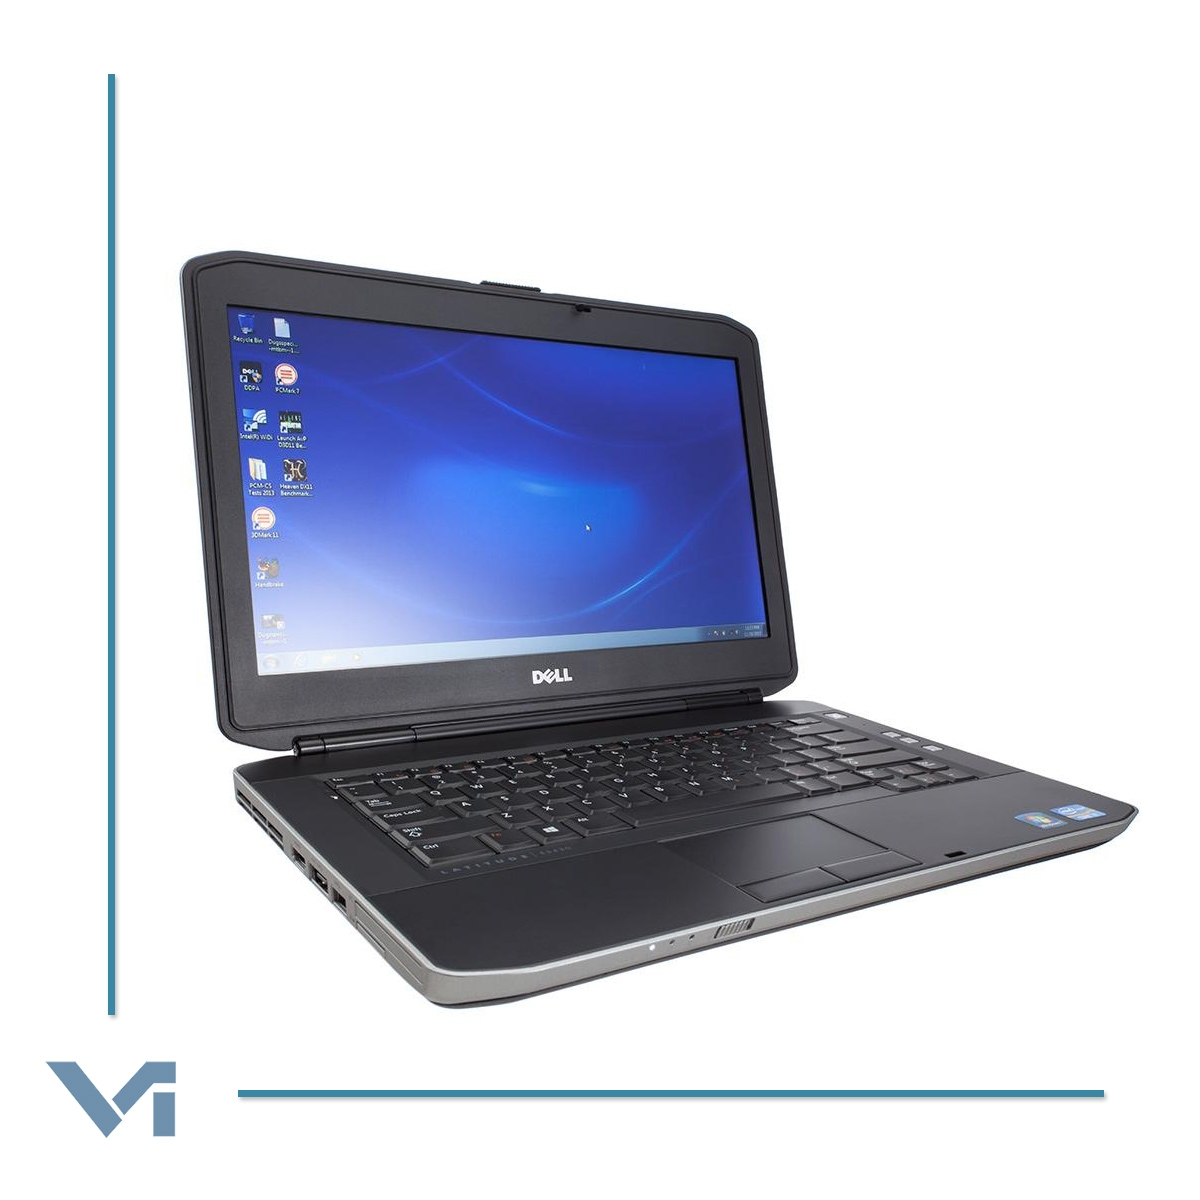 "Notebook DELL LATITUDE E5430 - Intel Core i5-3340M 4GB 320GB 14.0"" DVD/RW Windows 7 Professional -NOCOLOR- Ricondizionato"